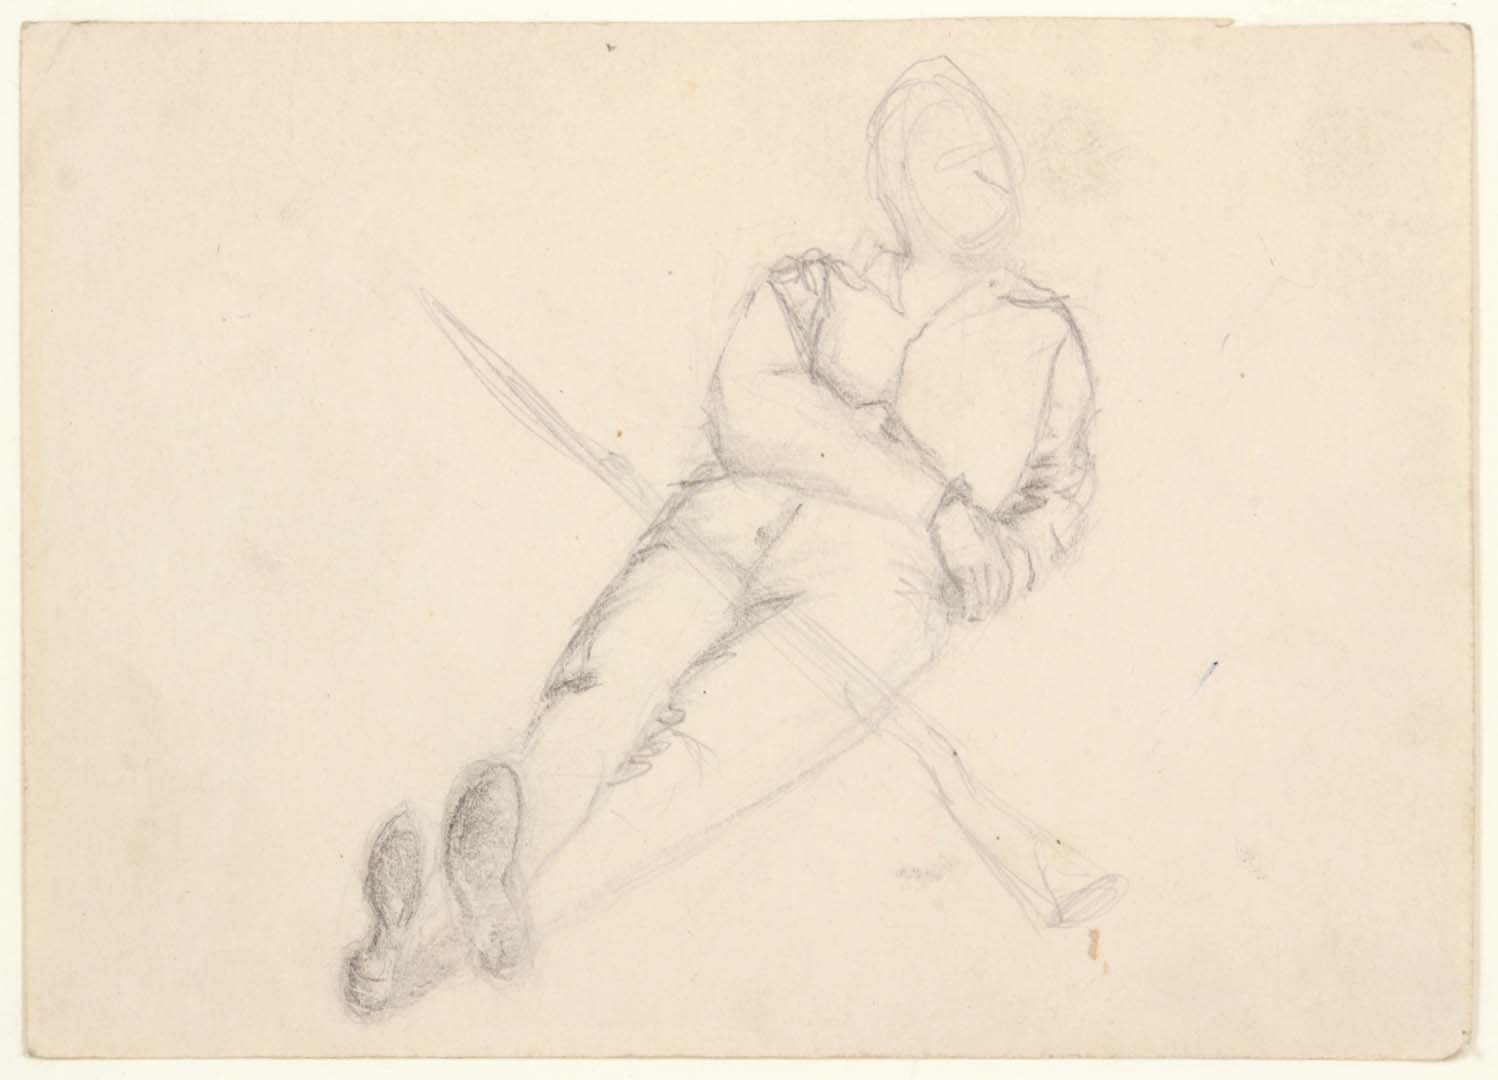 1949 NT (Soldier Resting on Elbow, Crossed Legs with Bayonette) - Graphite on Paper - 4.75 x 6.75